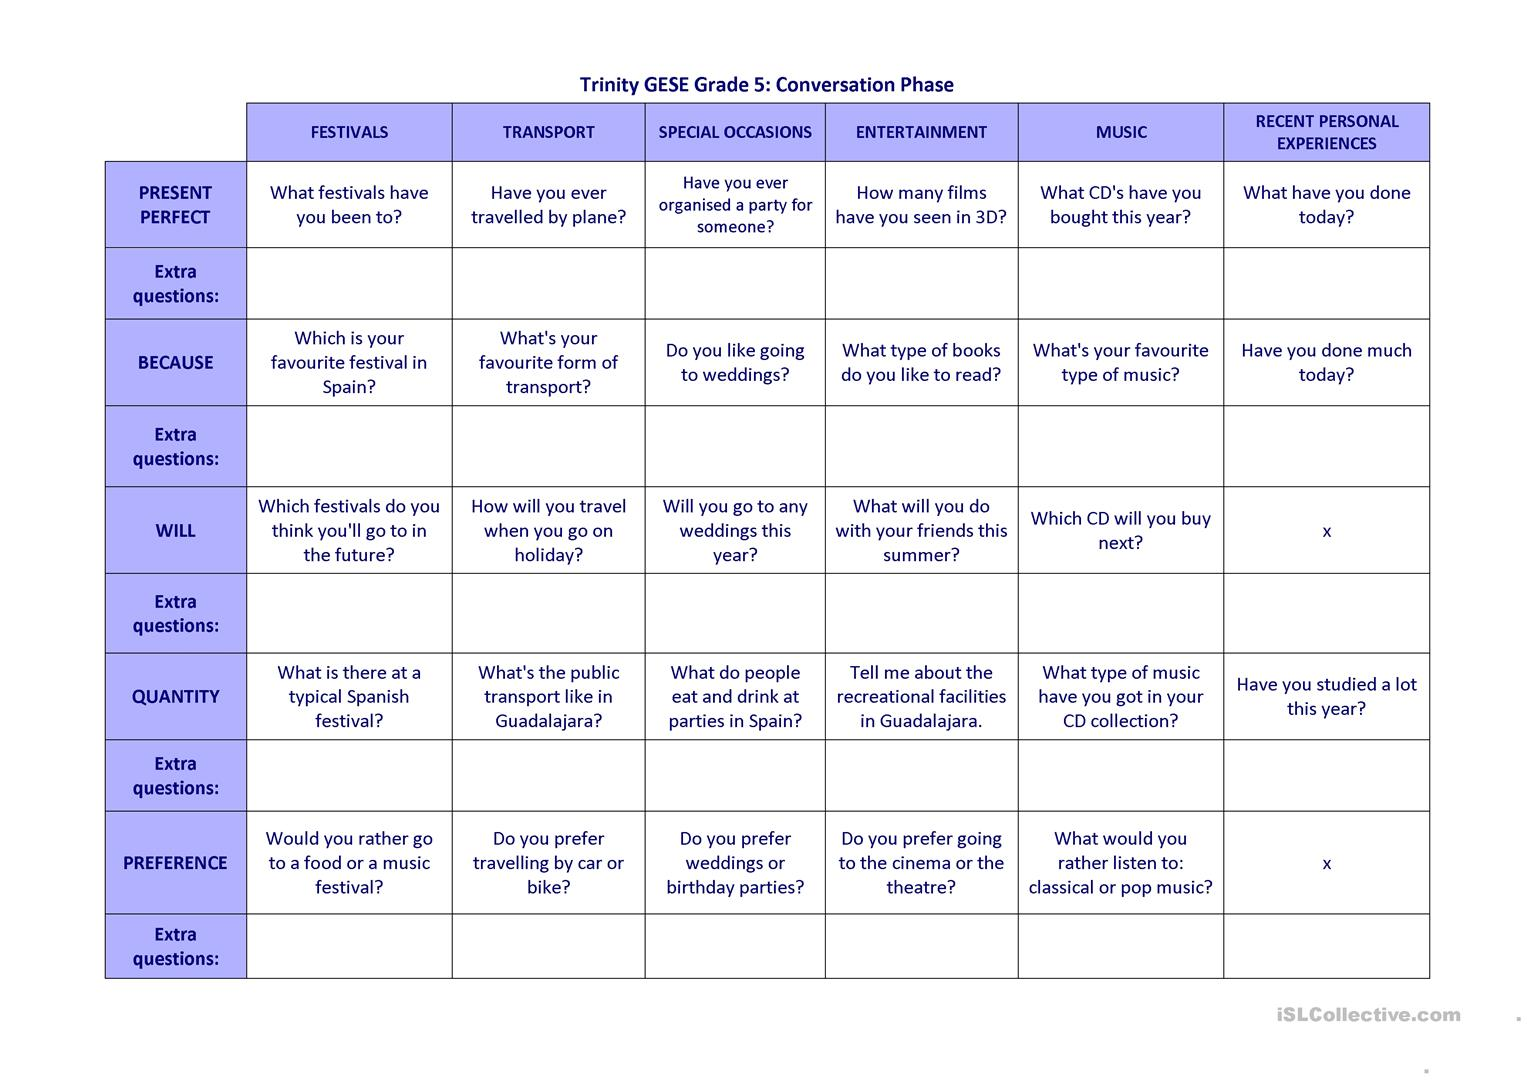 Trinity Gese Grade 5 Conversation Questions Worksheet